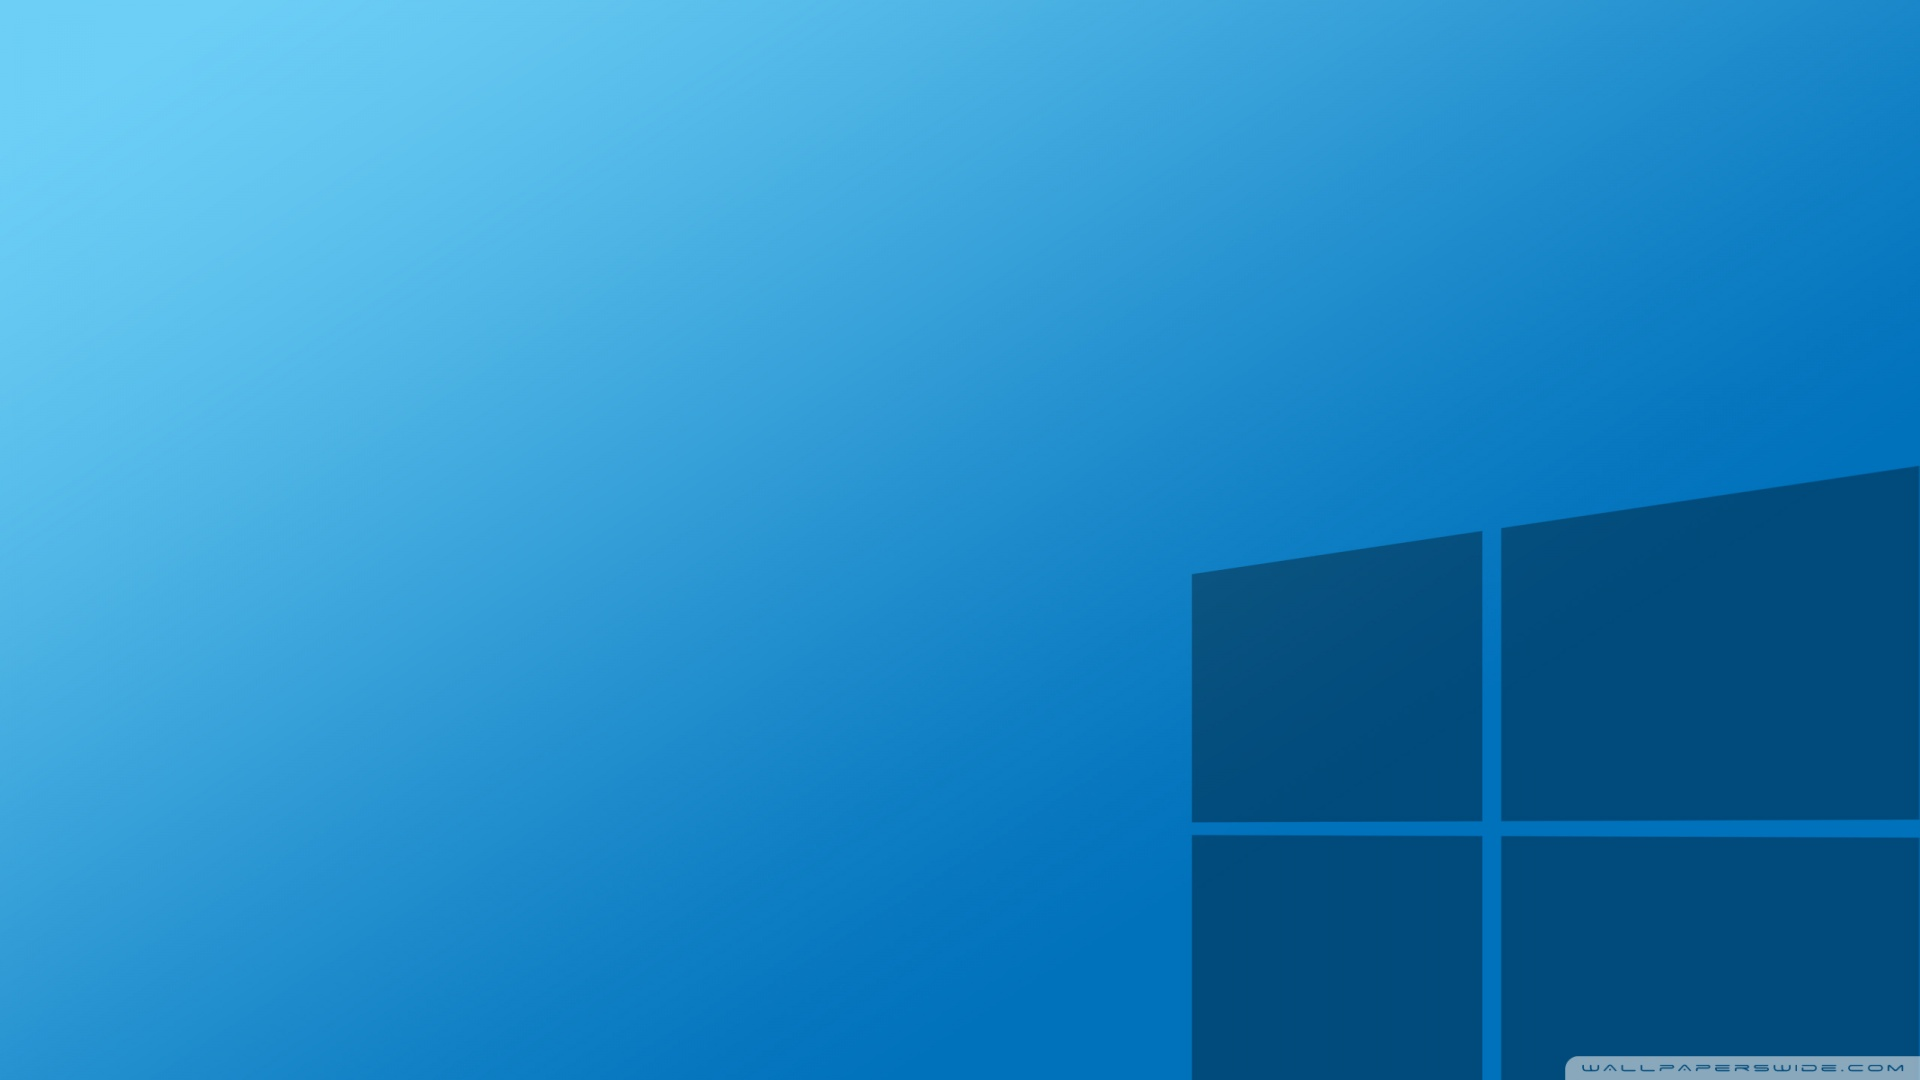 windows desktop pc background